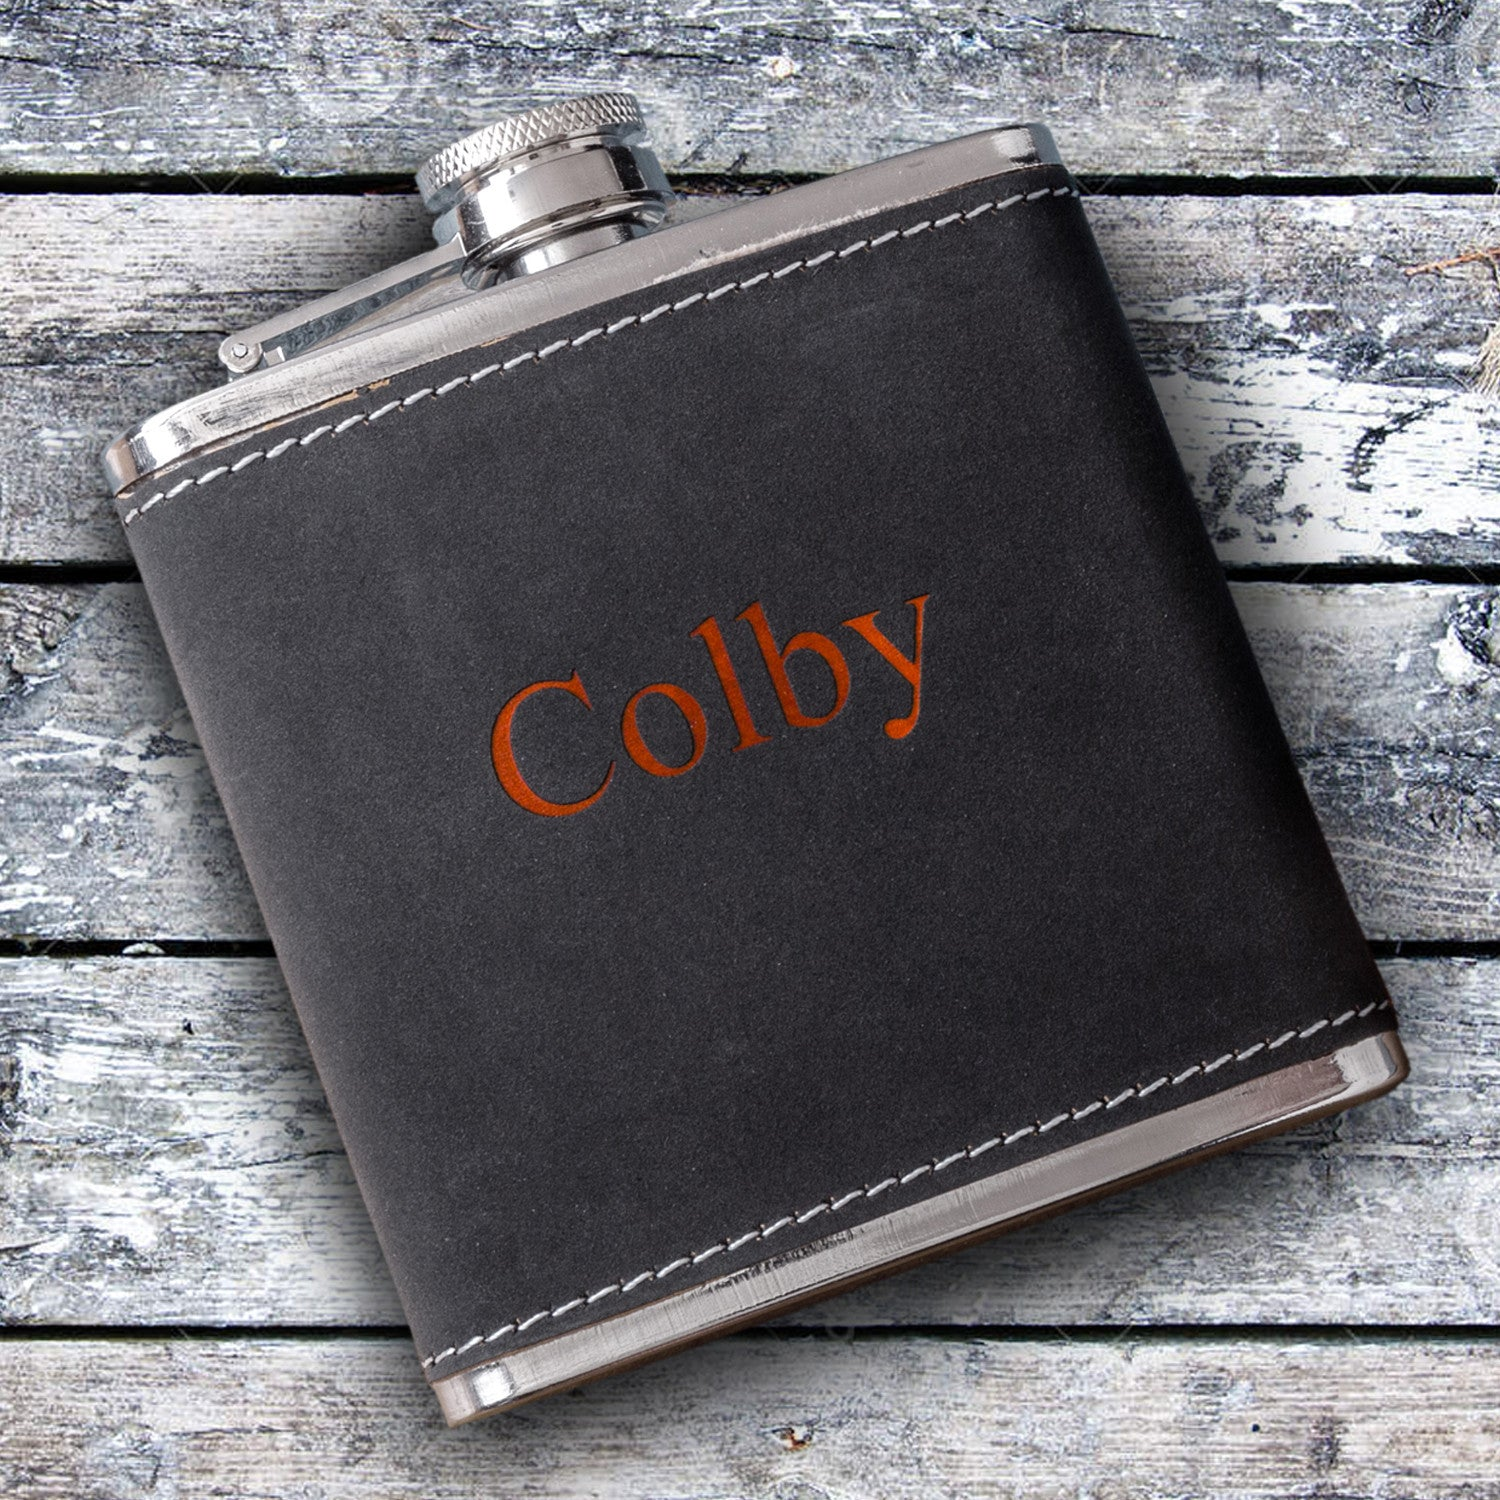 Personalized-6oz-Suede-Flask-with-Orange-Lettering